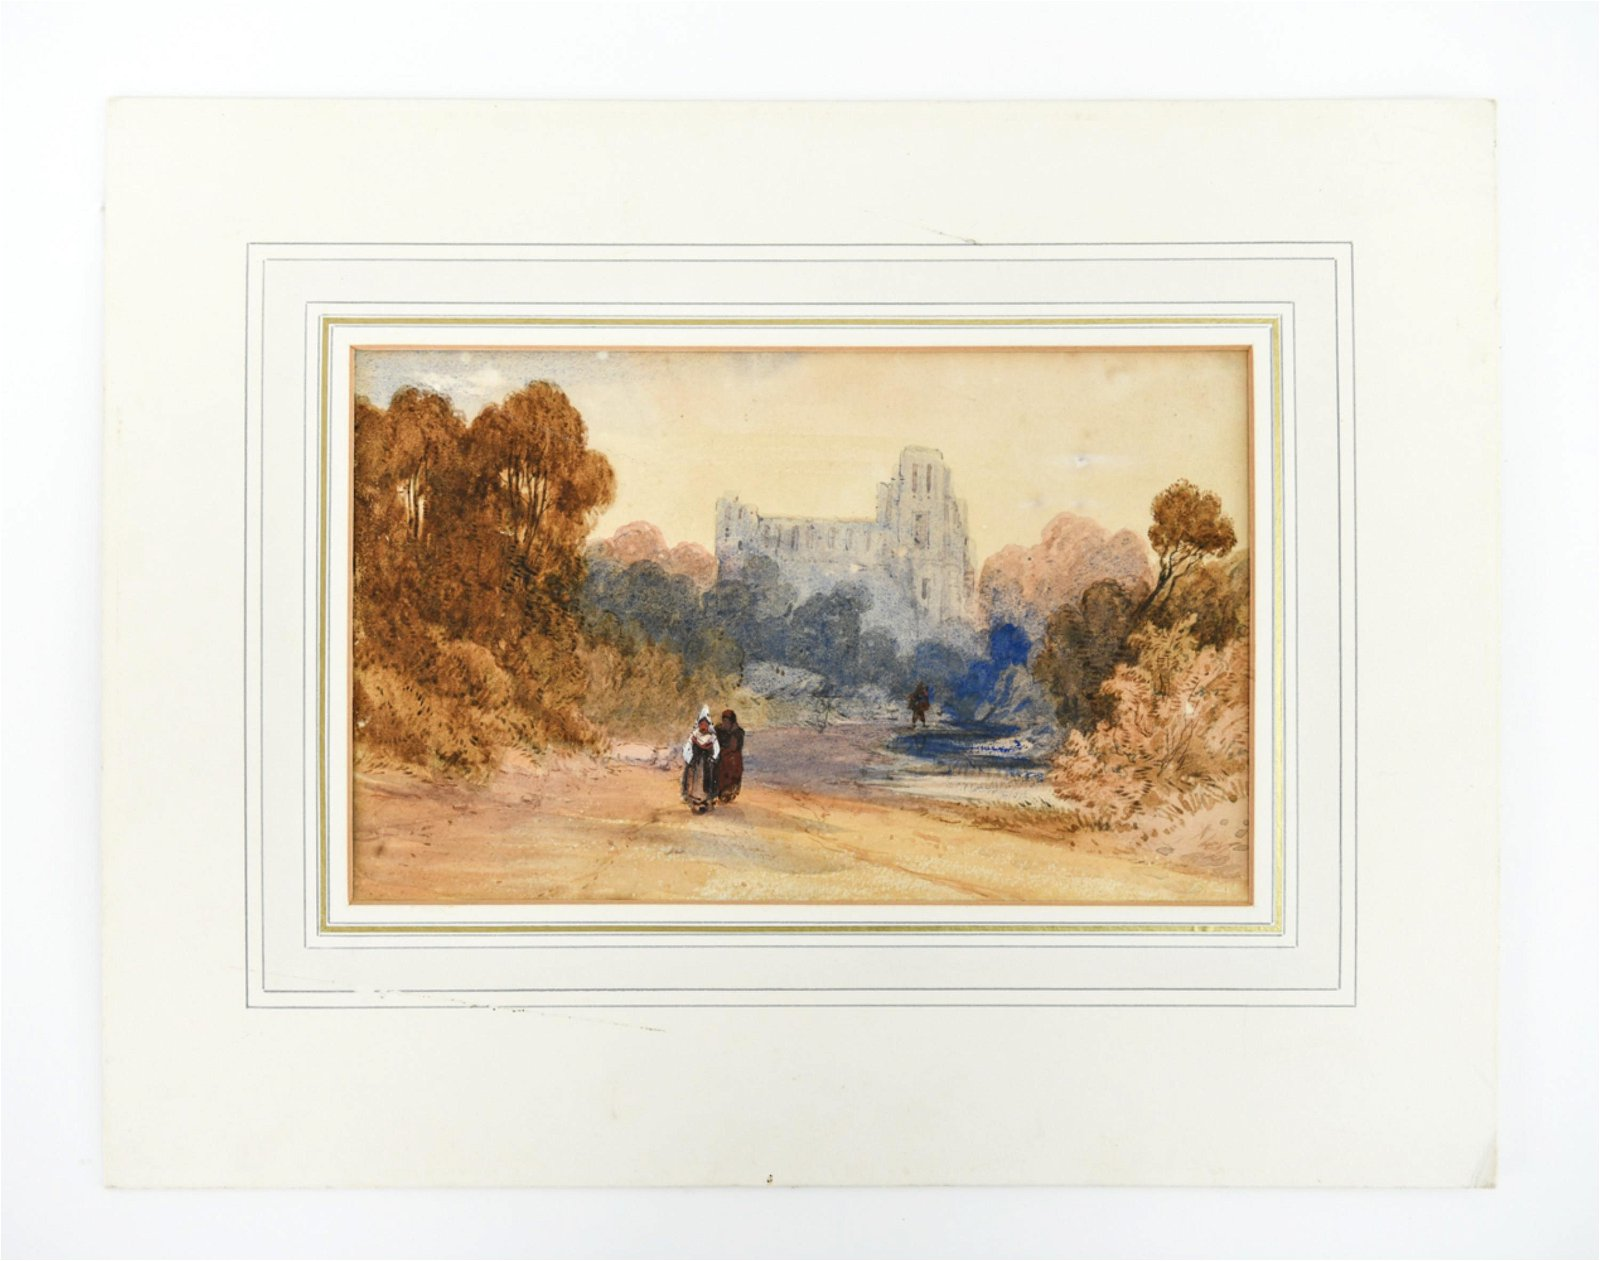 19TH CENTURY BRITISH WATERCOLOR, MIDDLE EAST VIEW